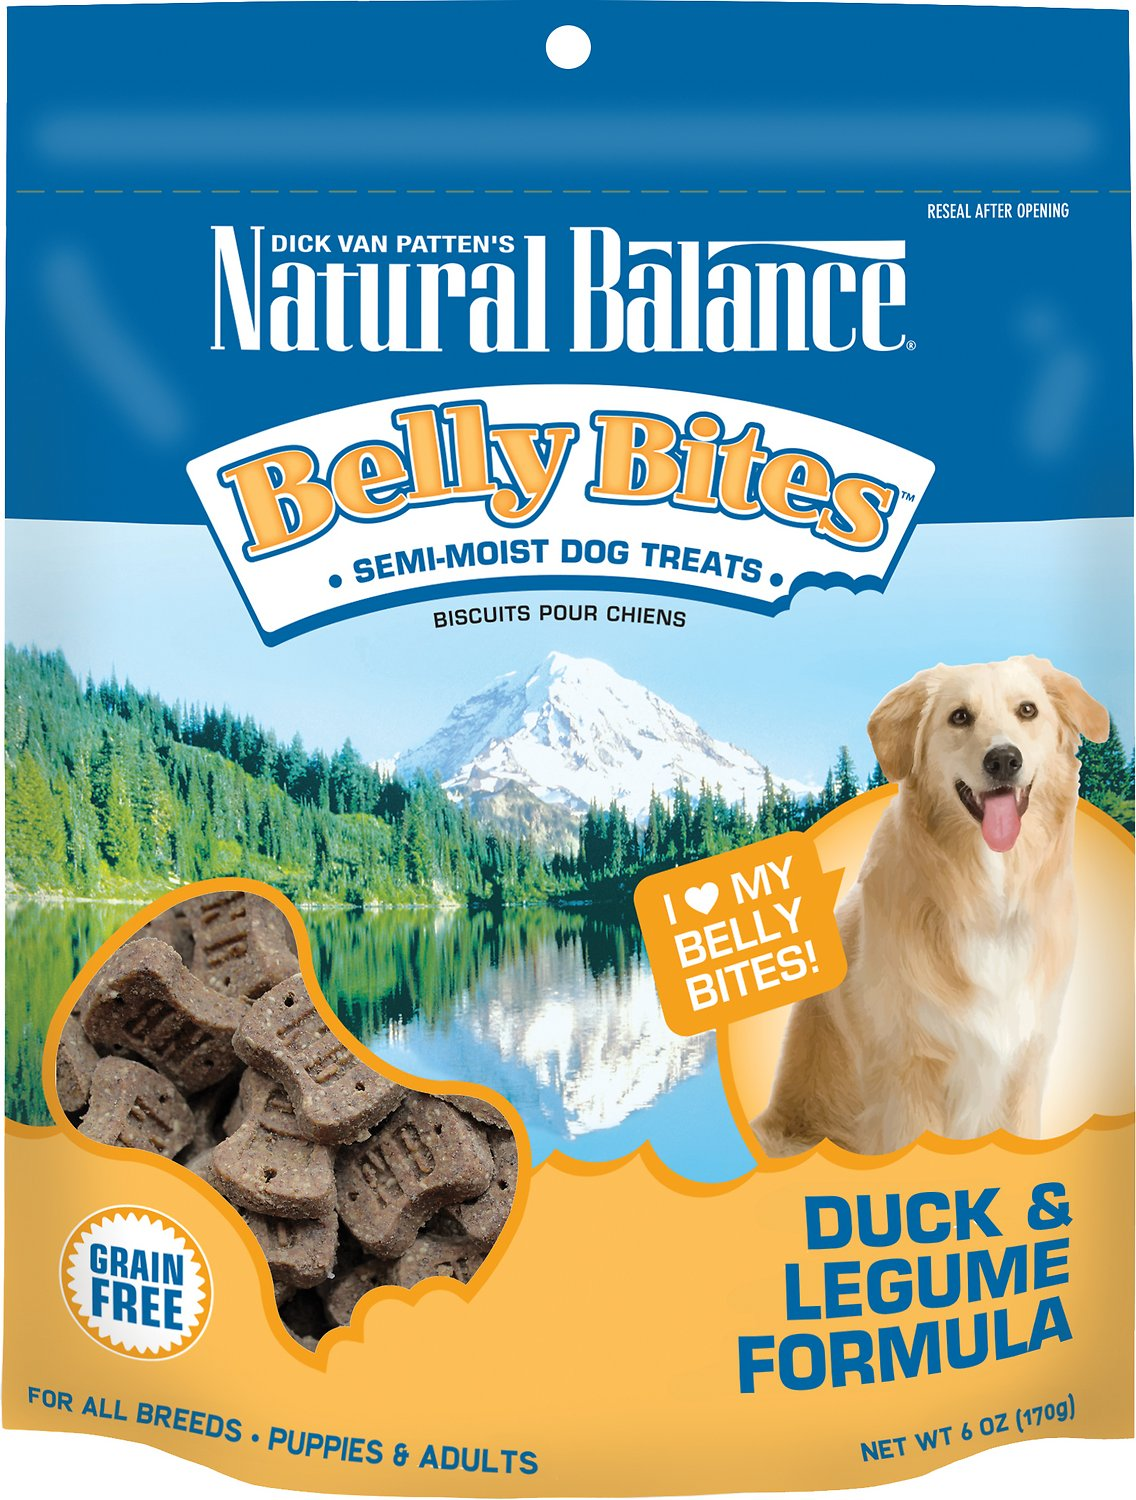 Natural Balance Belly Bites Duck & Legume Formula Grain-Free Dog Treats, 6-oz bag